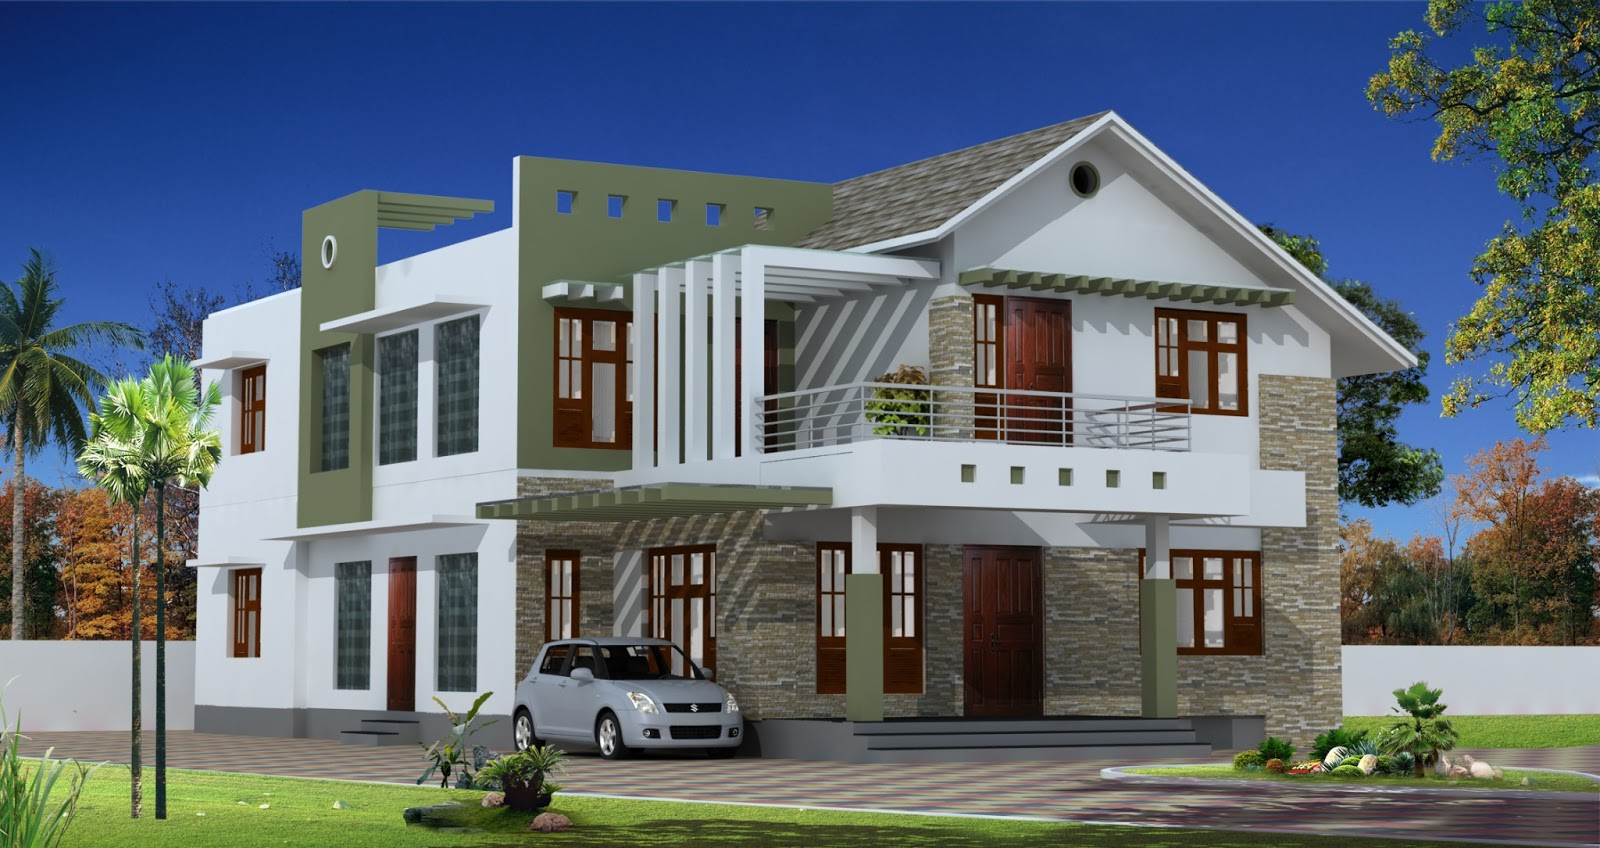 Latest home designs original home designs for Home building ideas